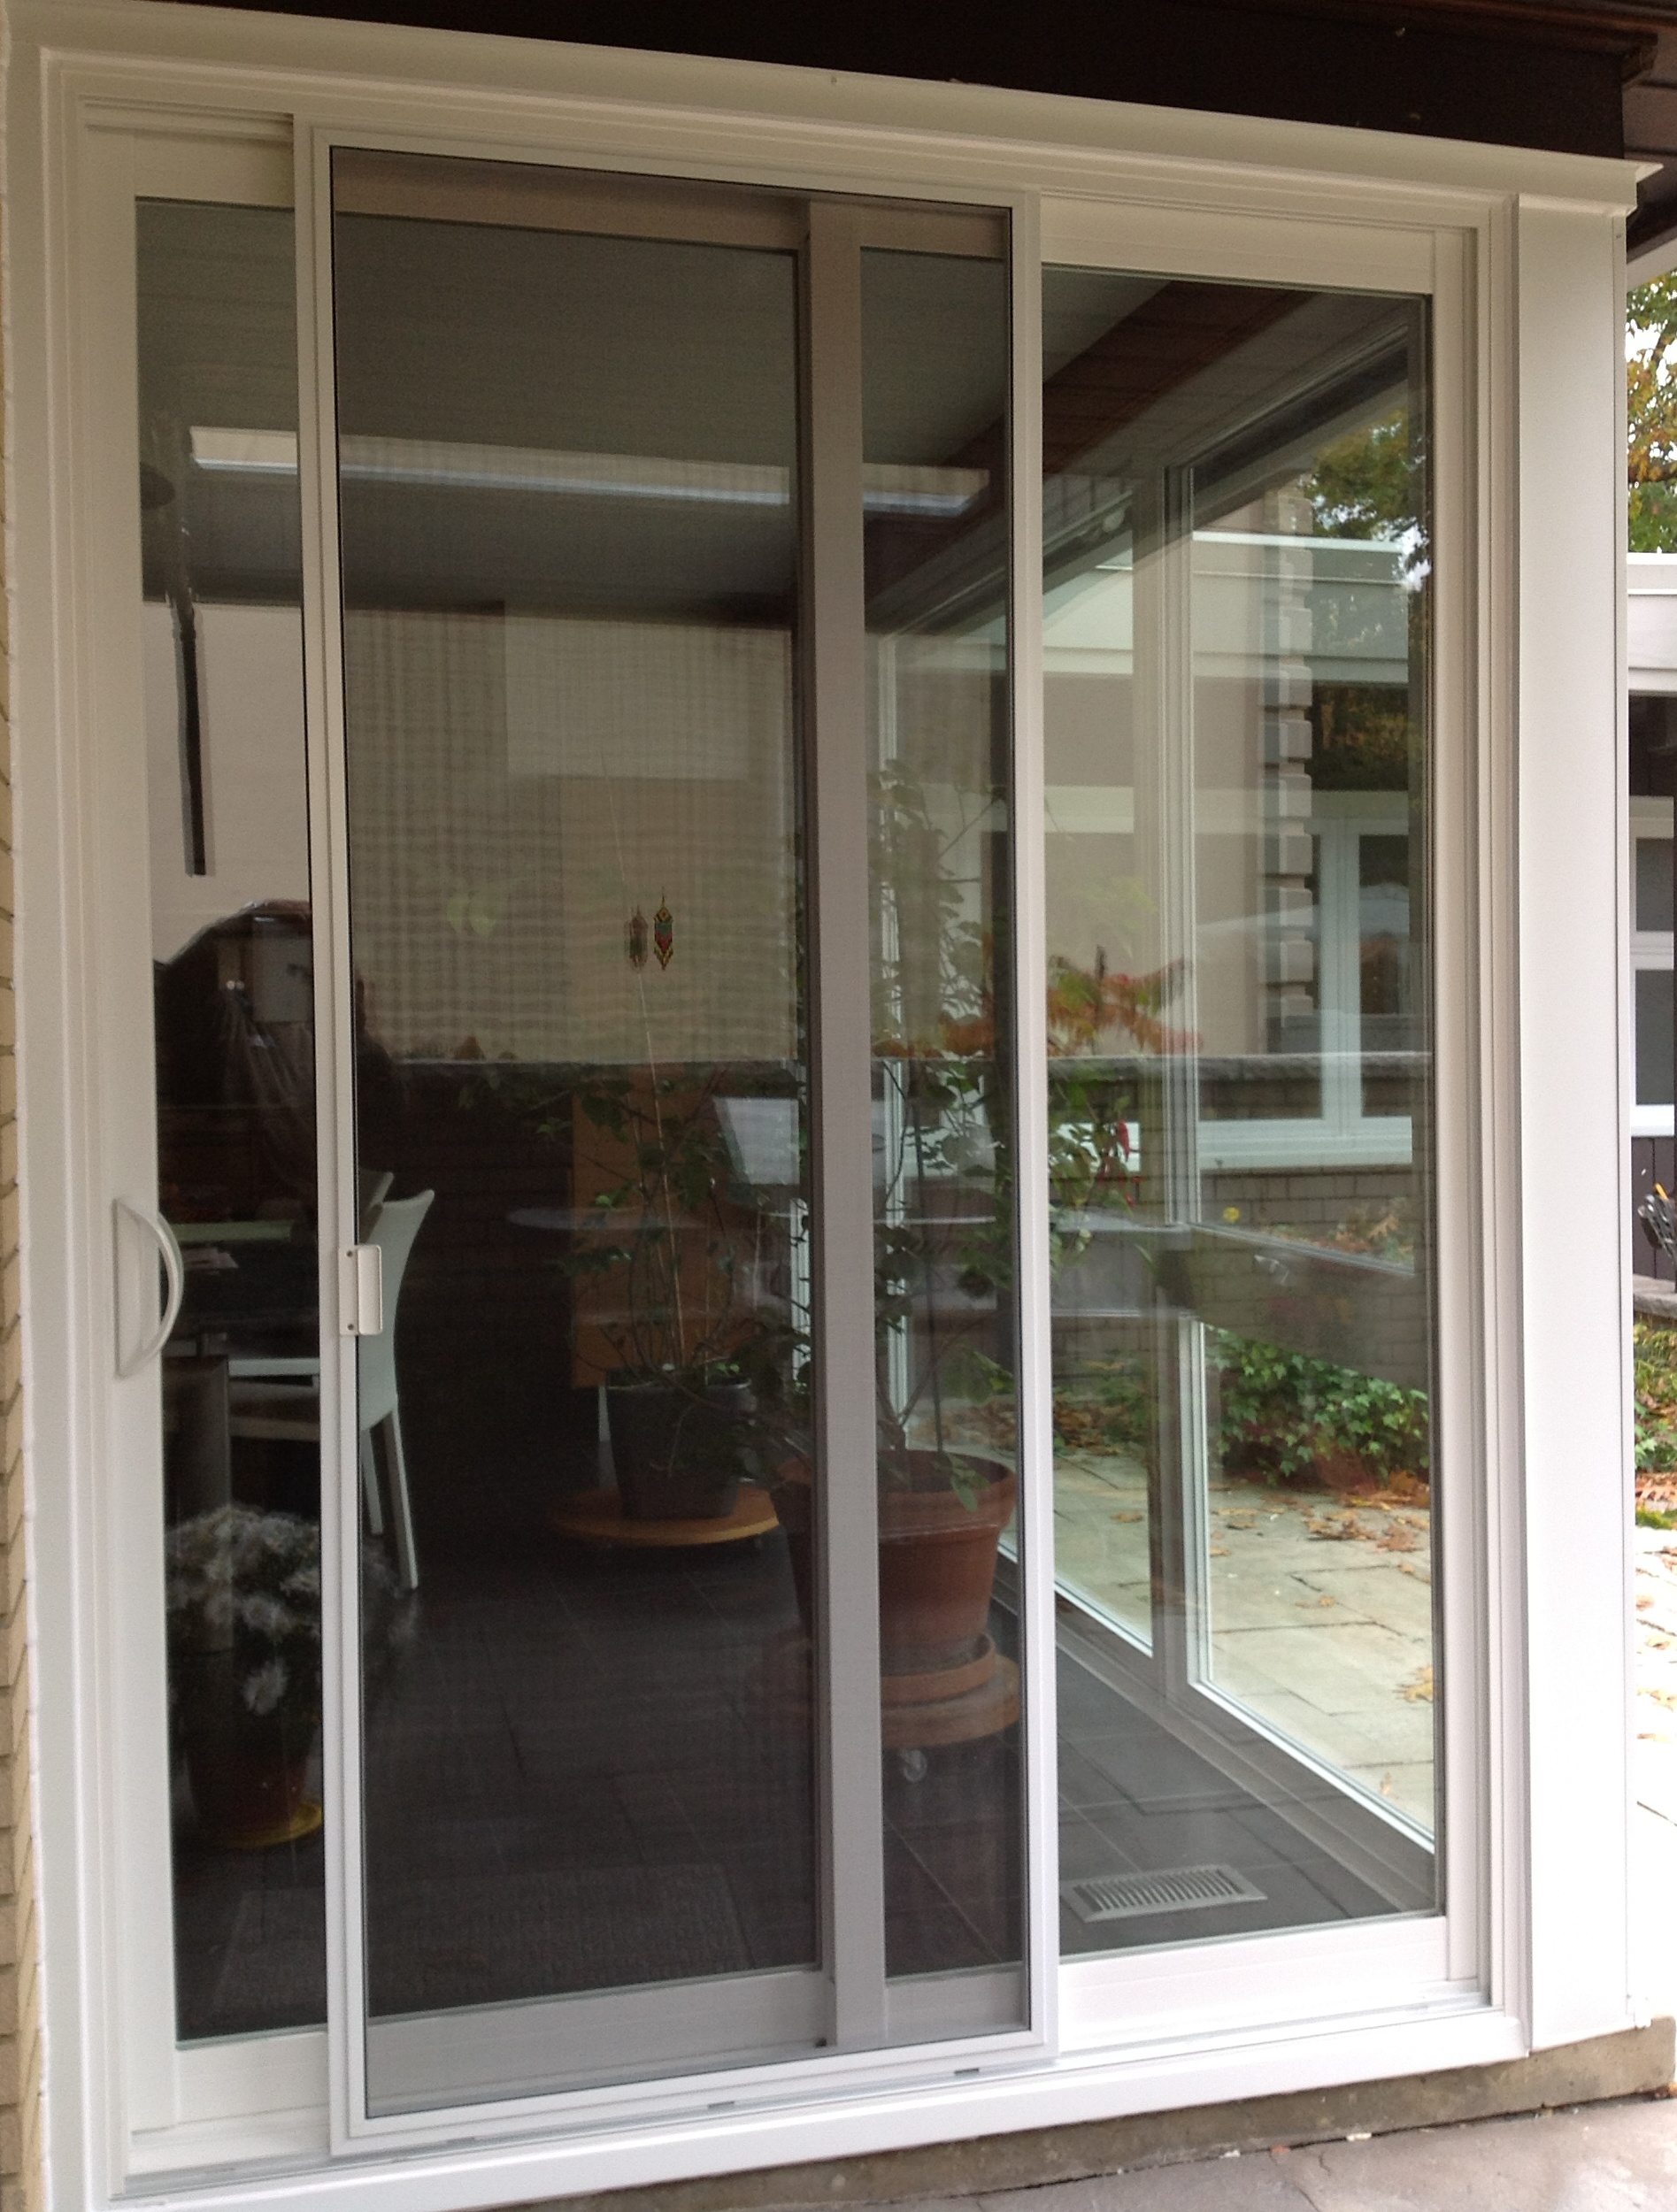 Sliding interior screen doors design is the most popular one on the market today